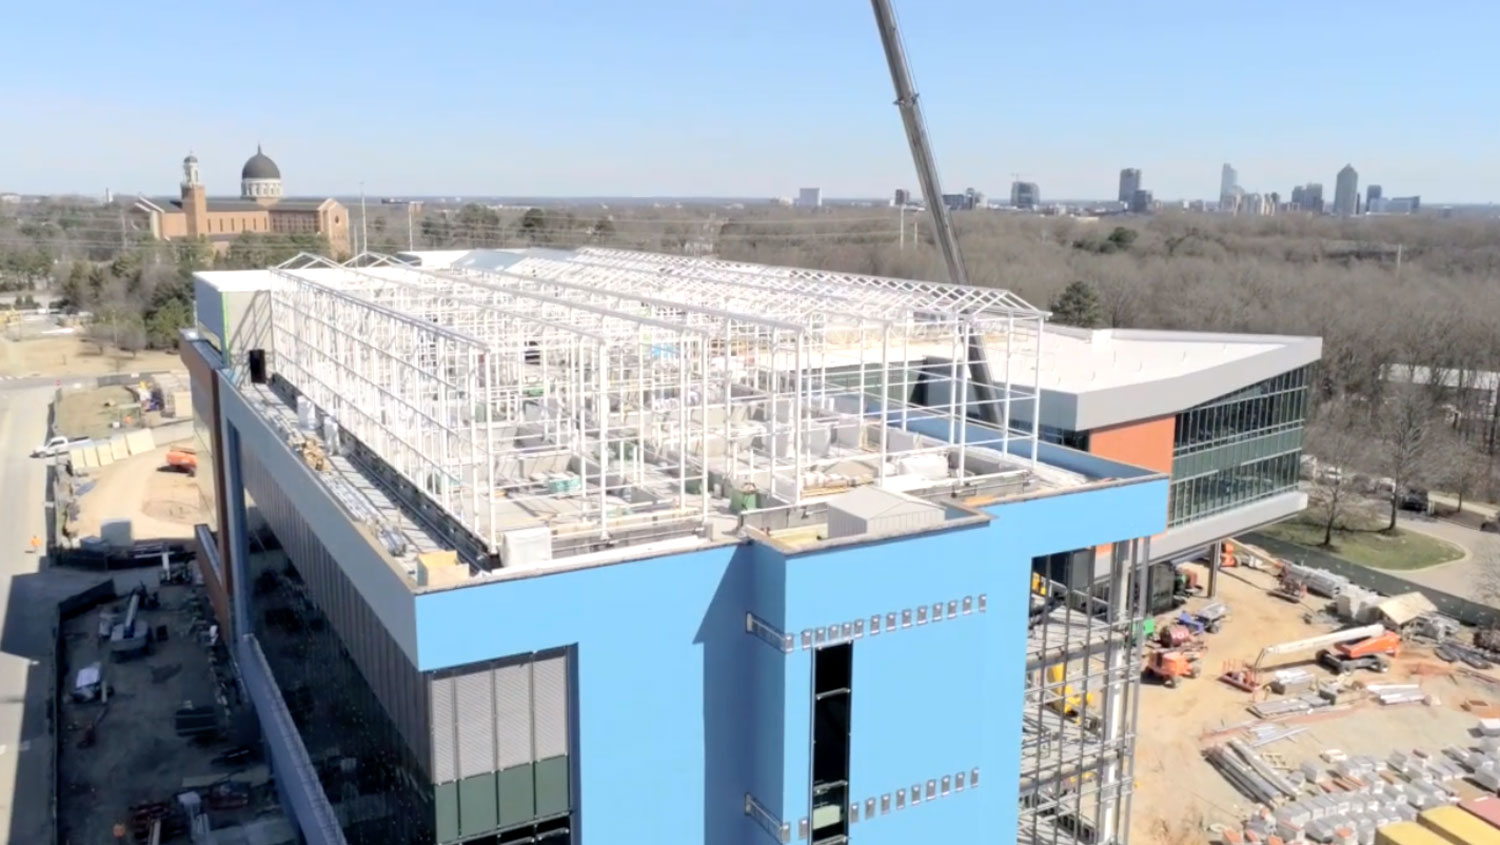 Construction progress of the N.C. PSI building